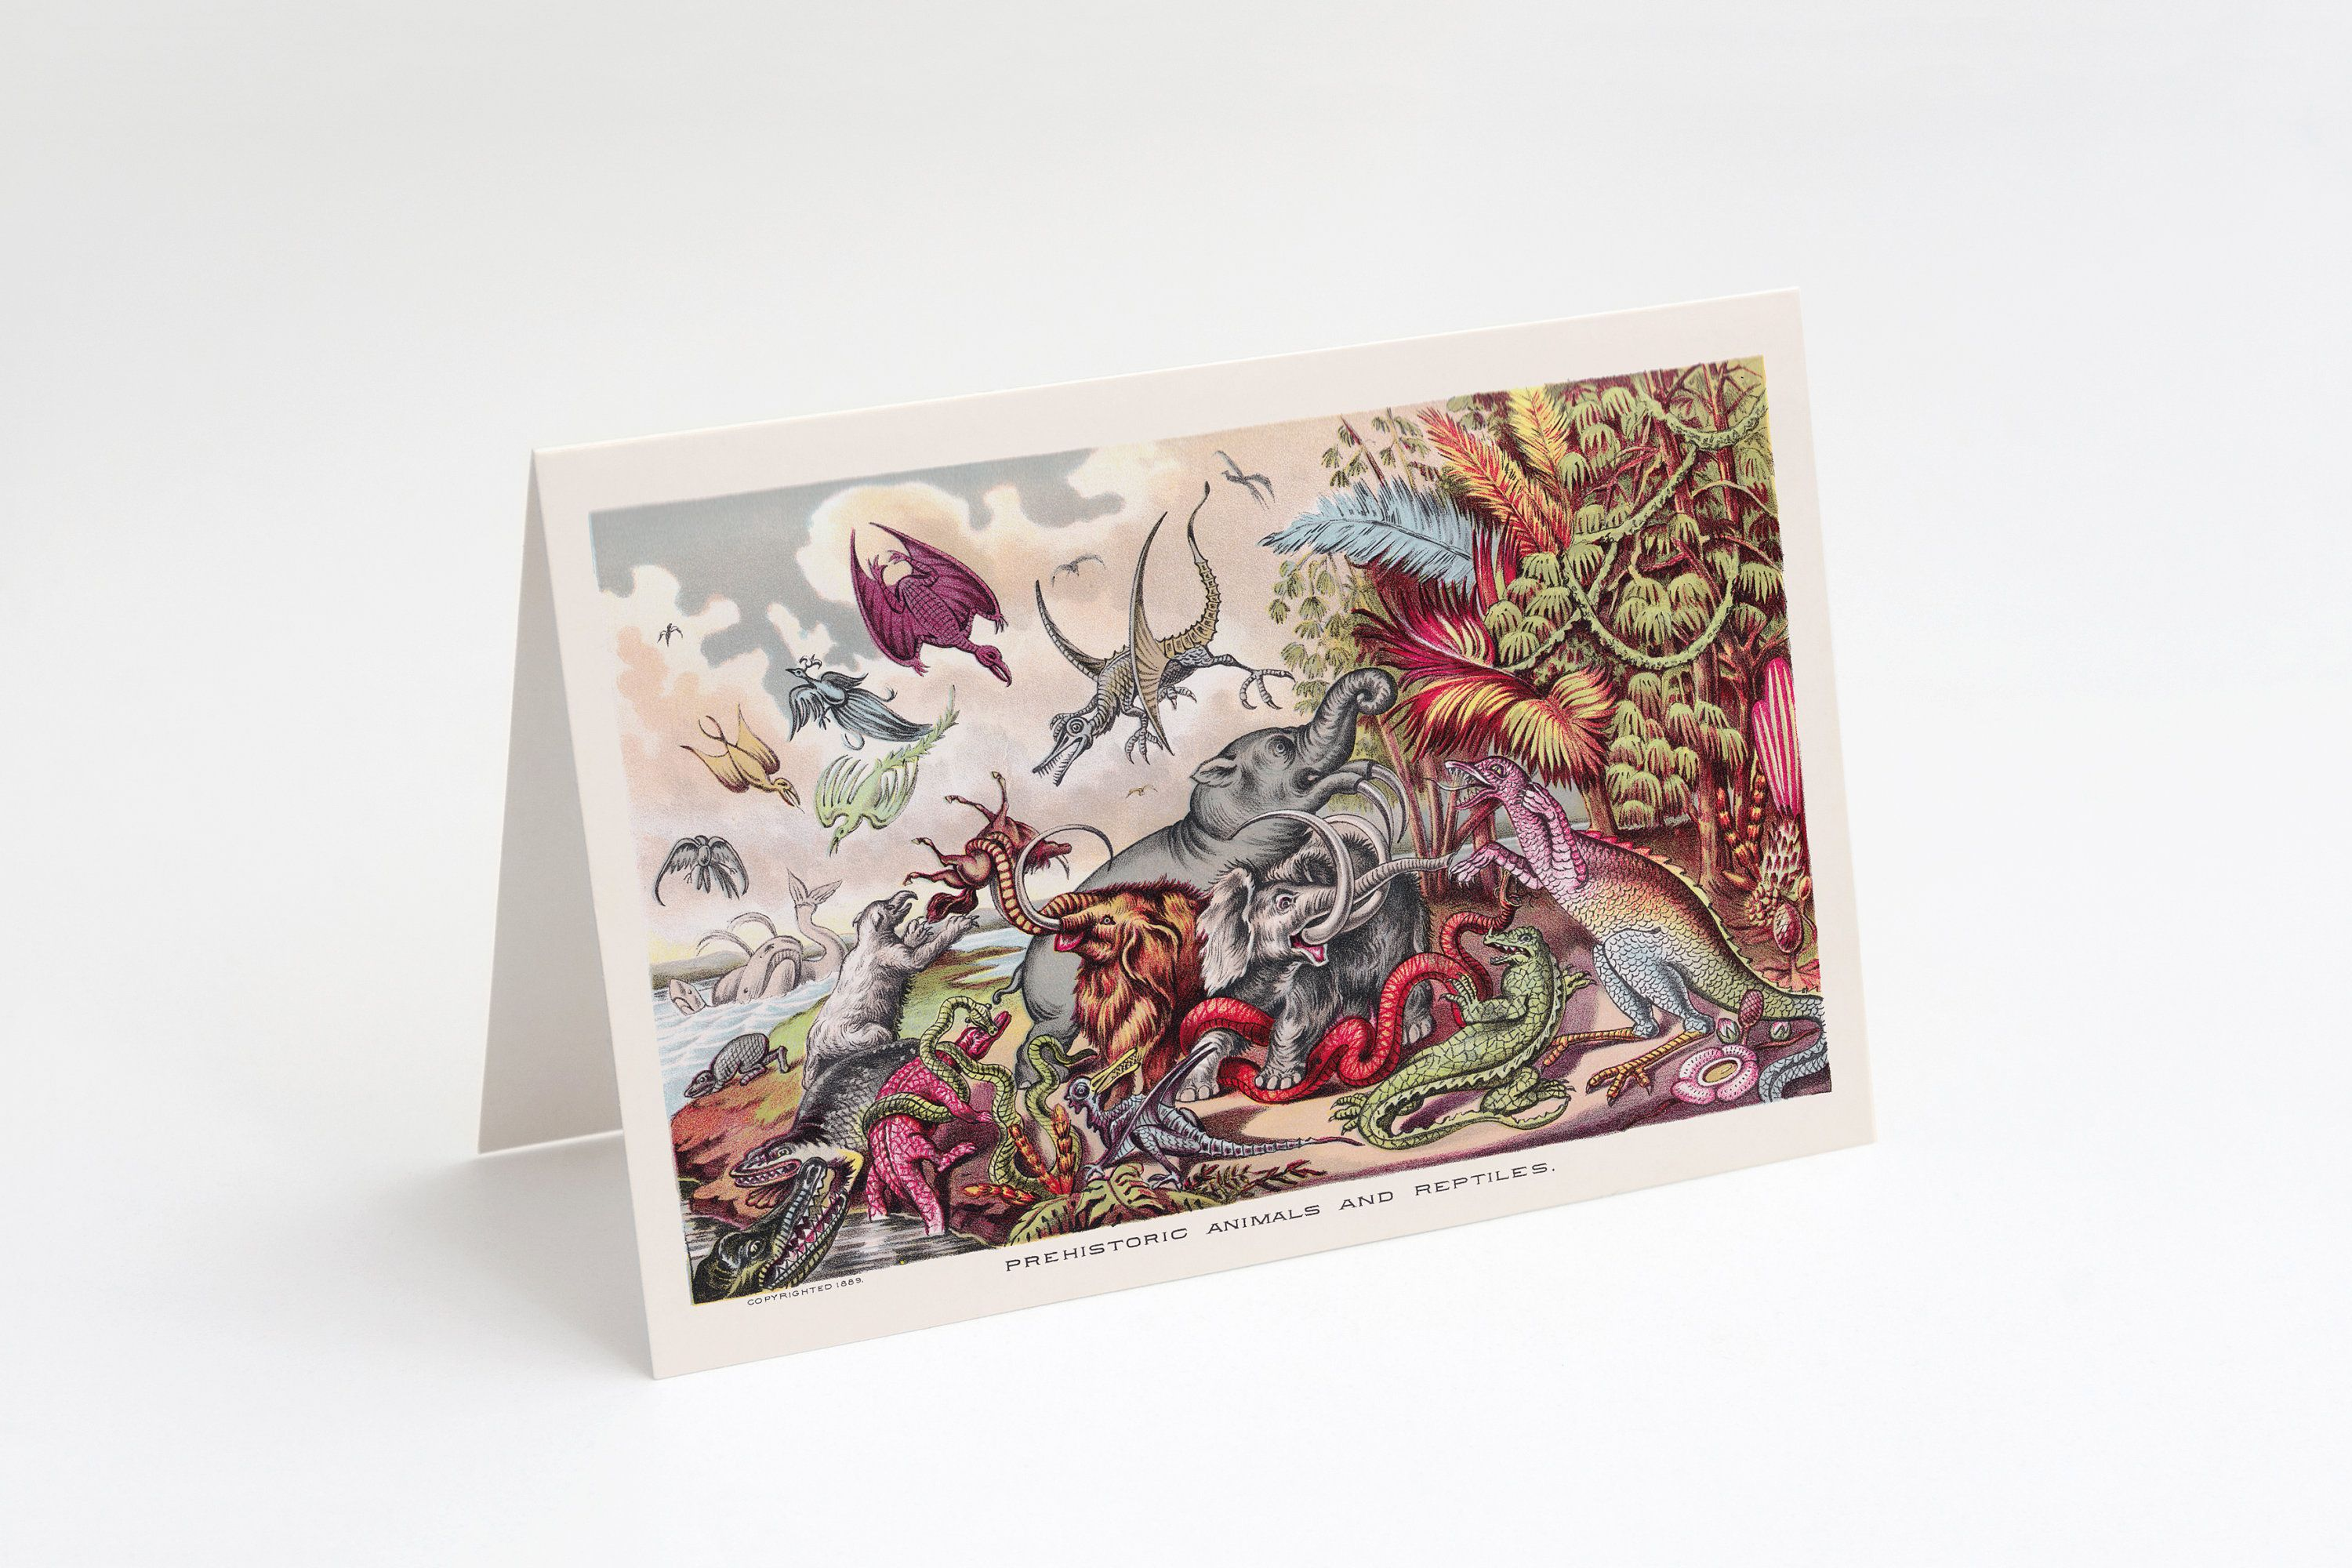 Prehistoric Animals & Reptiles 5x7 A7 Note Card | Blank Card Victorian Dinosaurs Wooly Mammoth Pterodactyl Mastadon Prehistoric